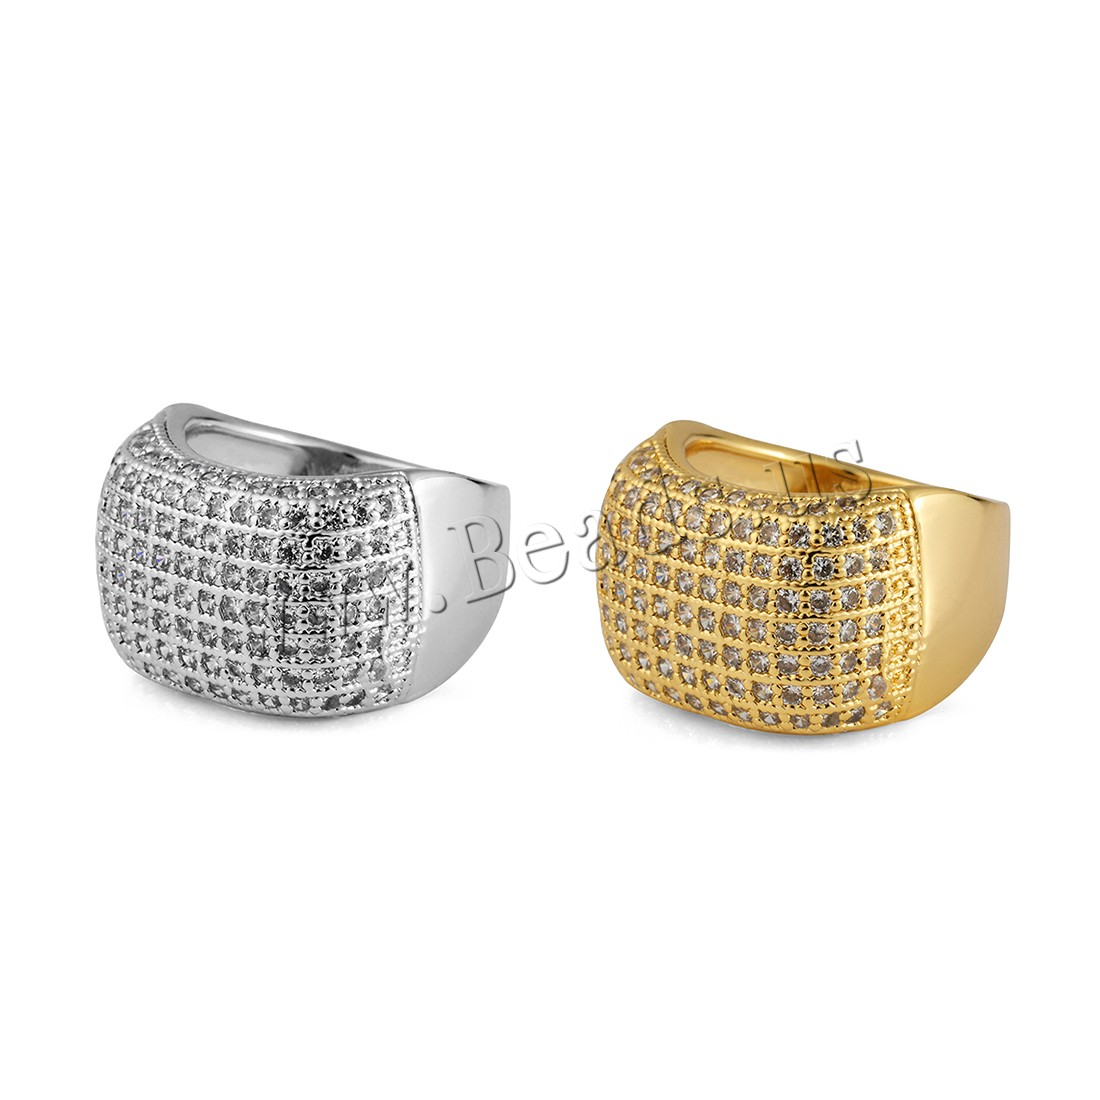 Buy Brass Finger Ring plated Unisex & rhinestone colors choice 16mm Sold PC